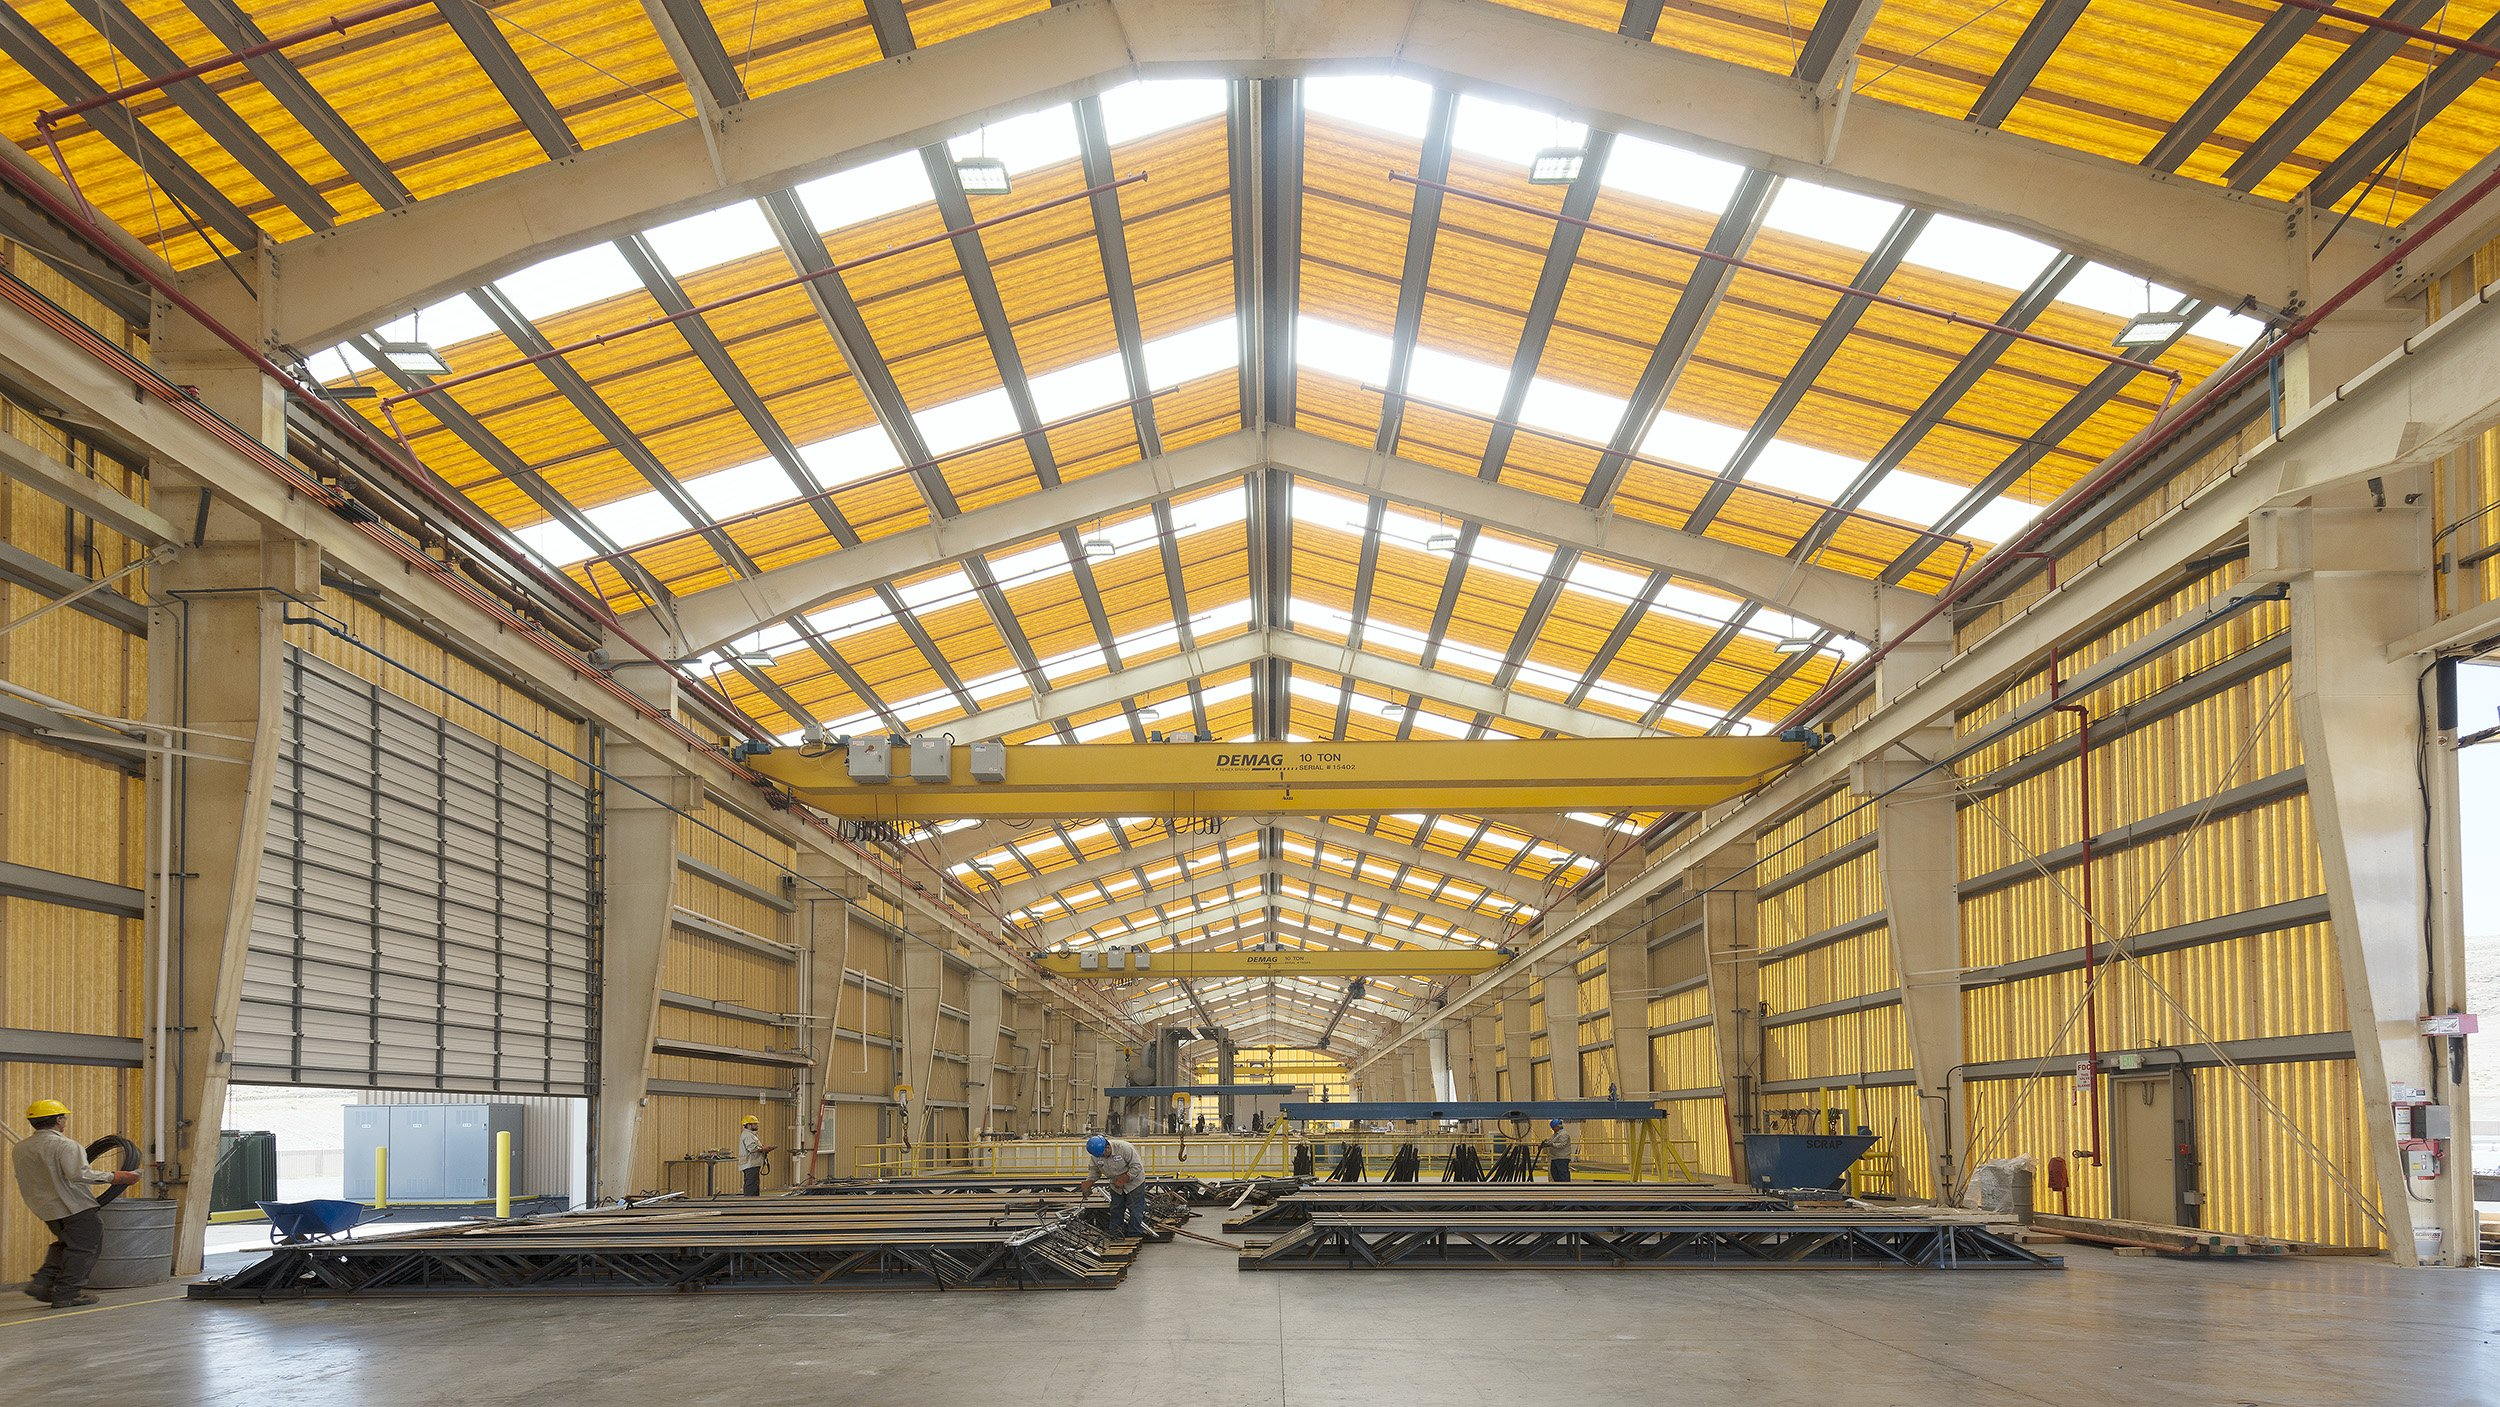 The TDG team designed an eco-friendly, hot-dip galvanizing plant in Reno for AZZ